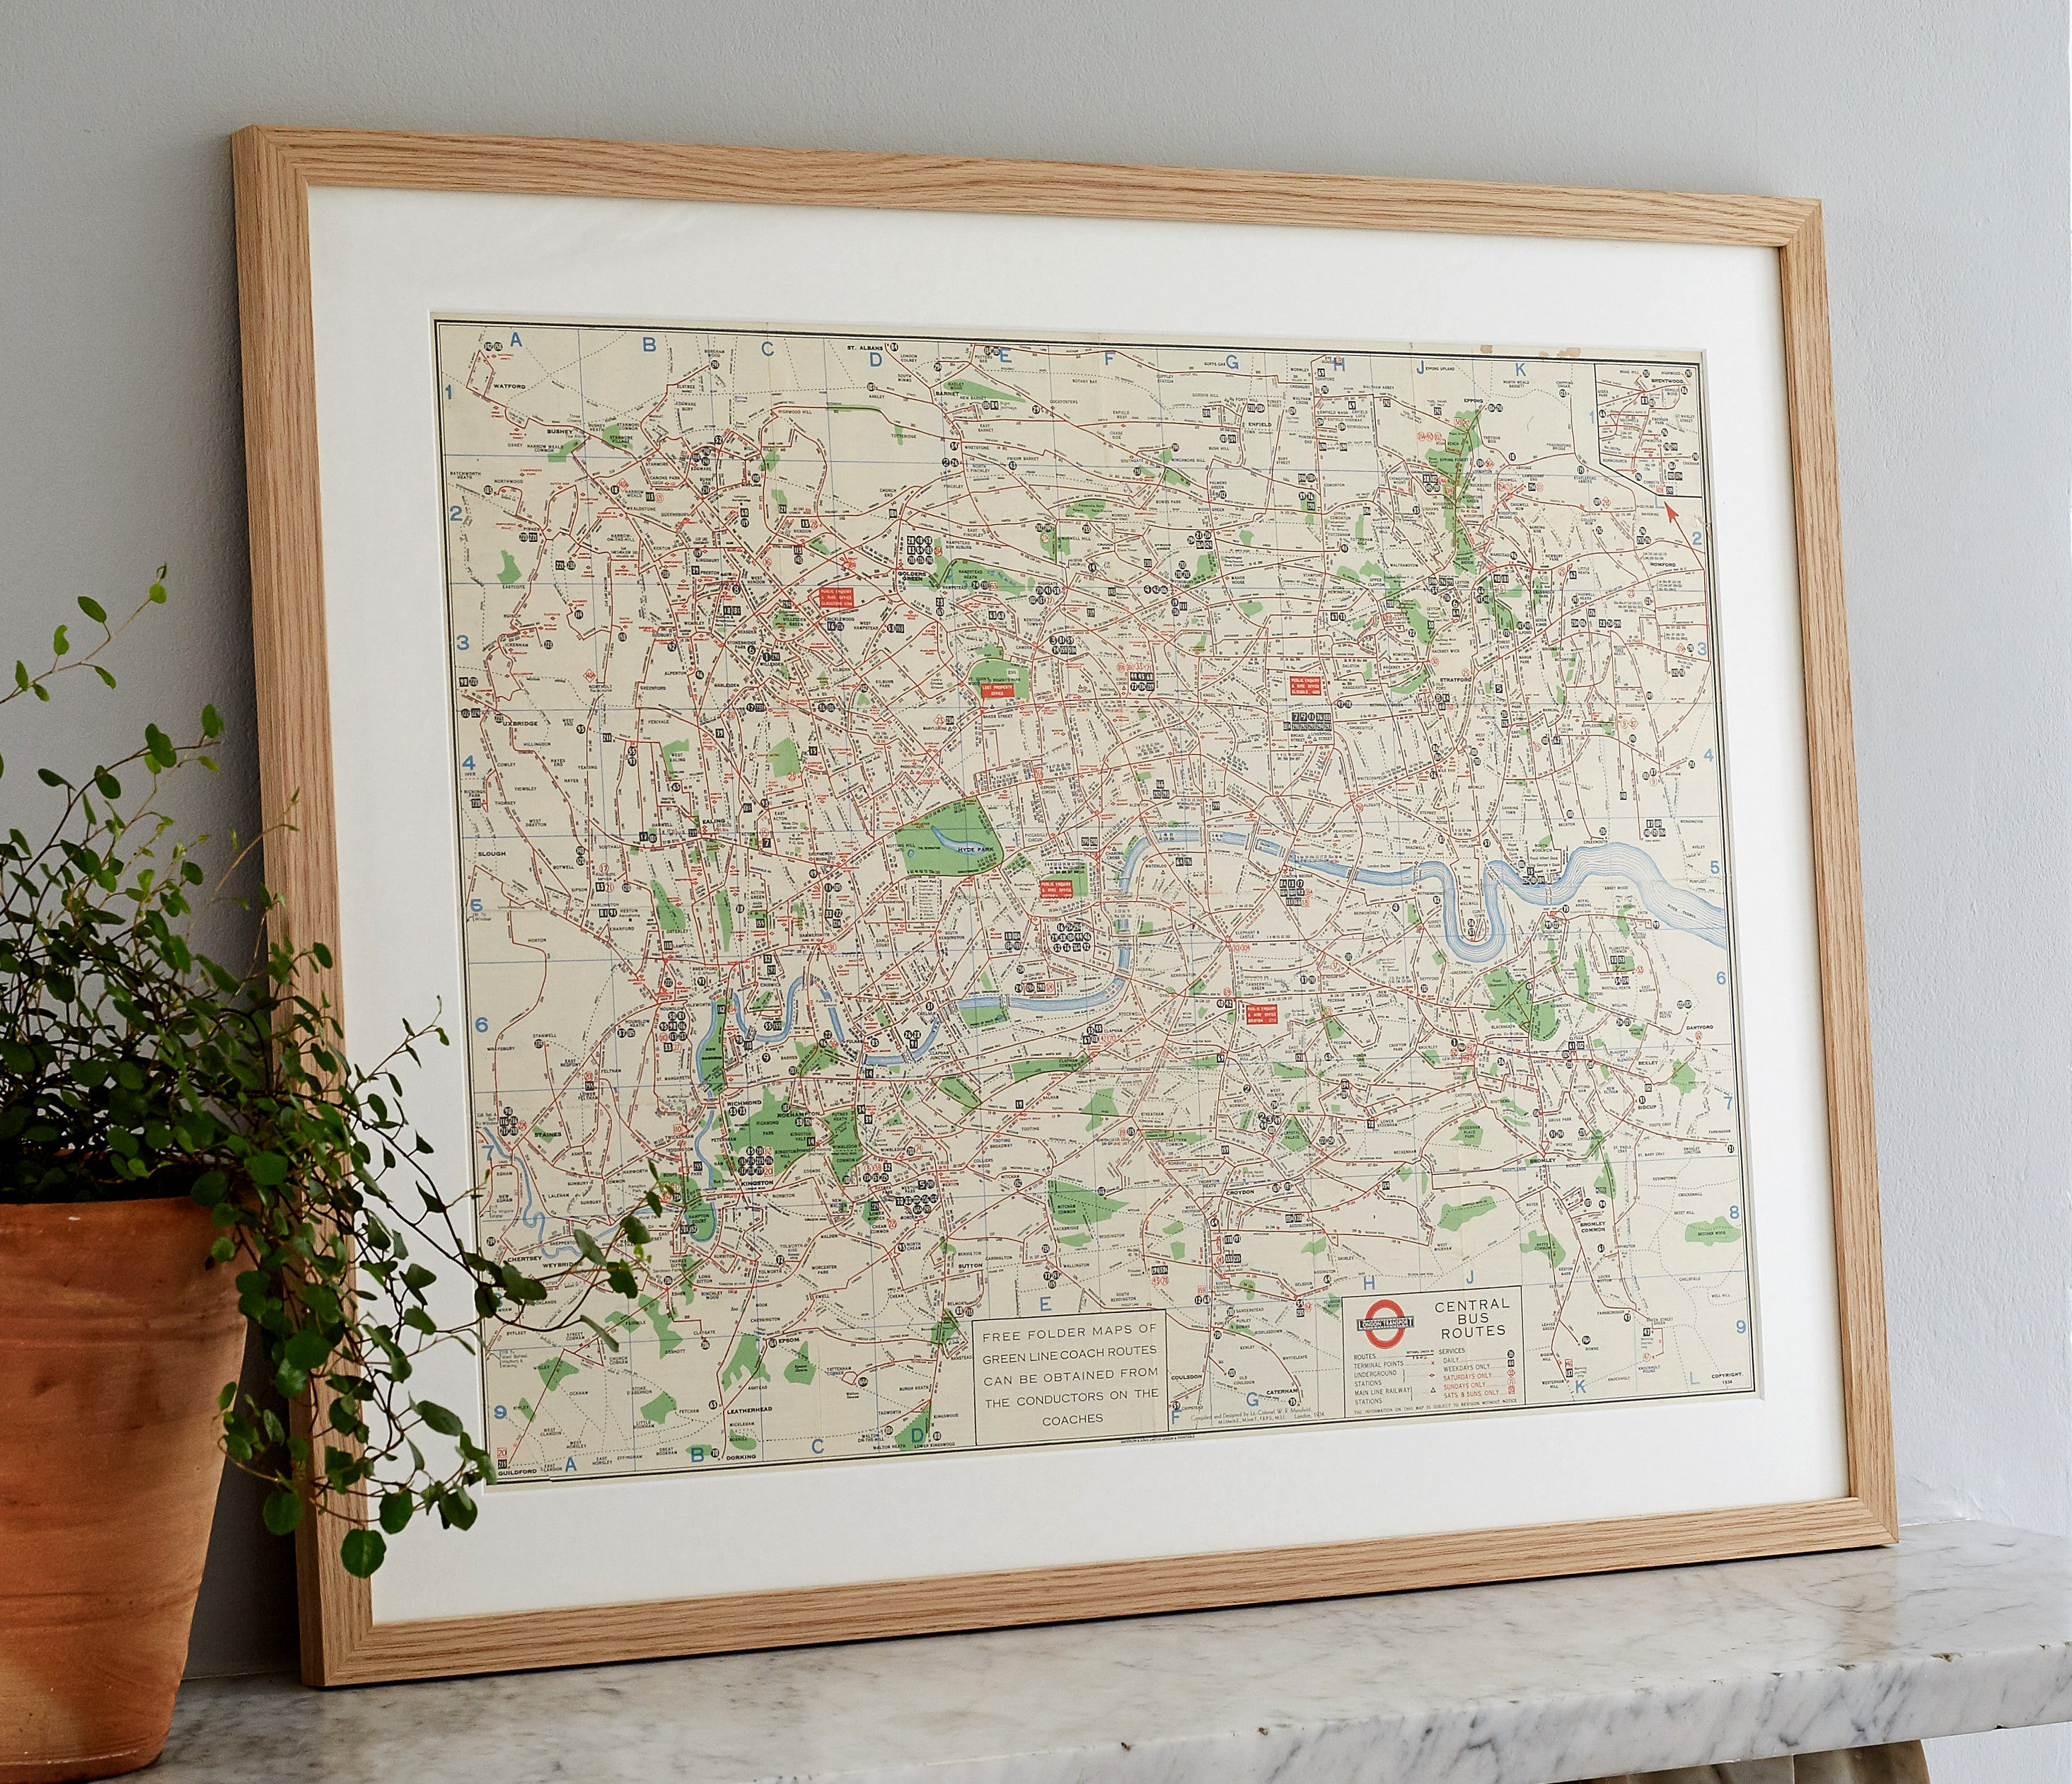 1934 Original London 'Central Bus Routes' Map with Oak Frame